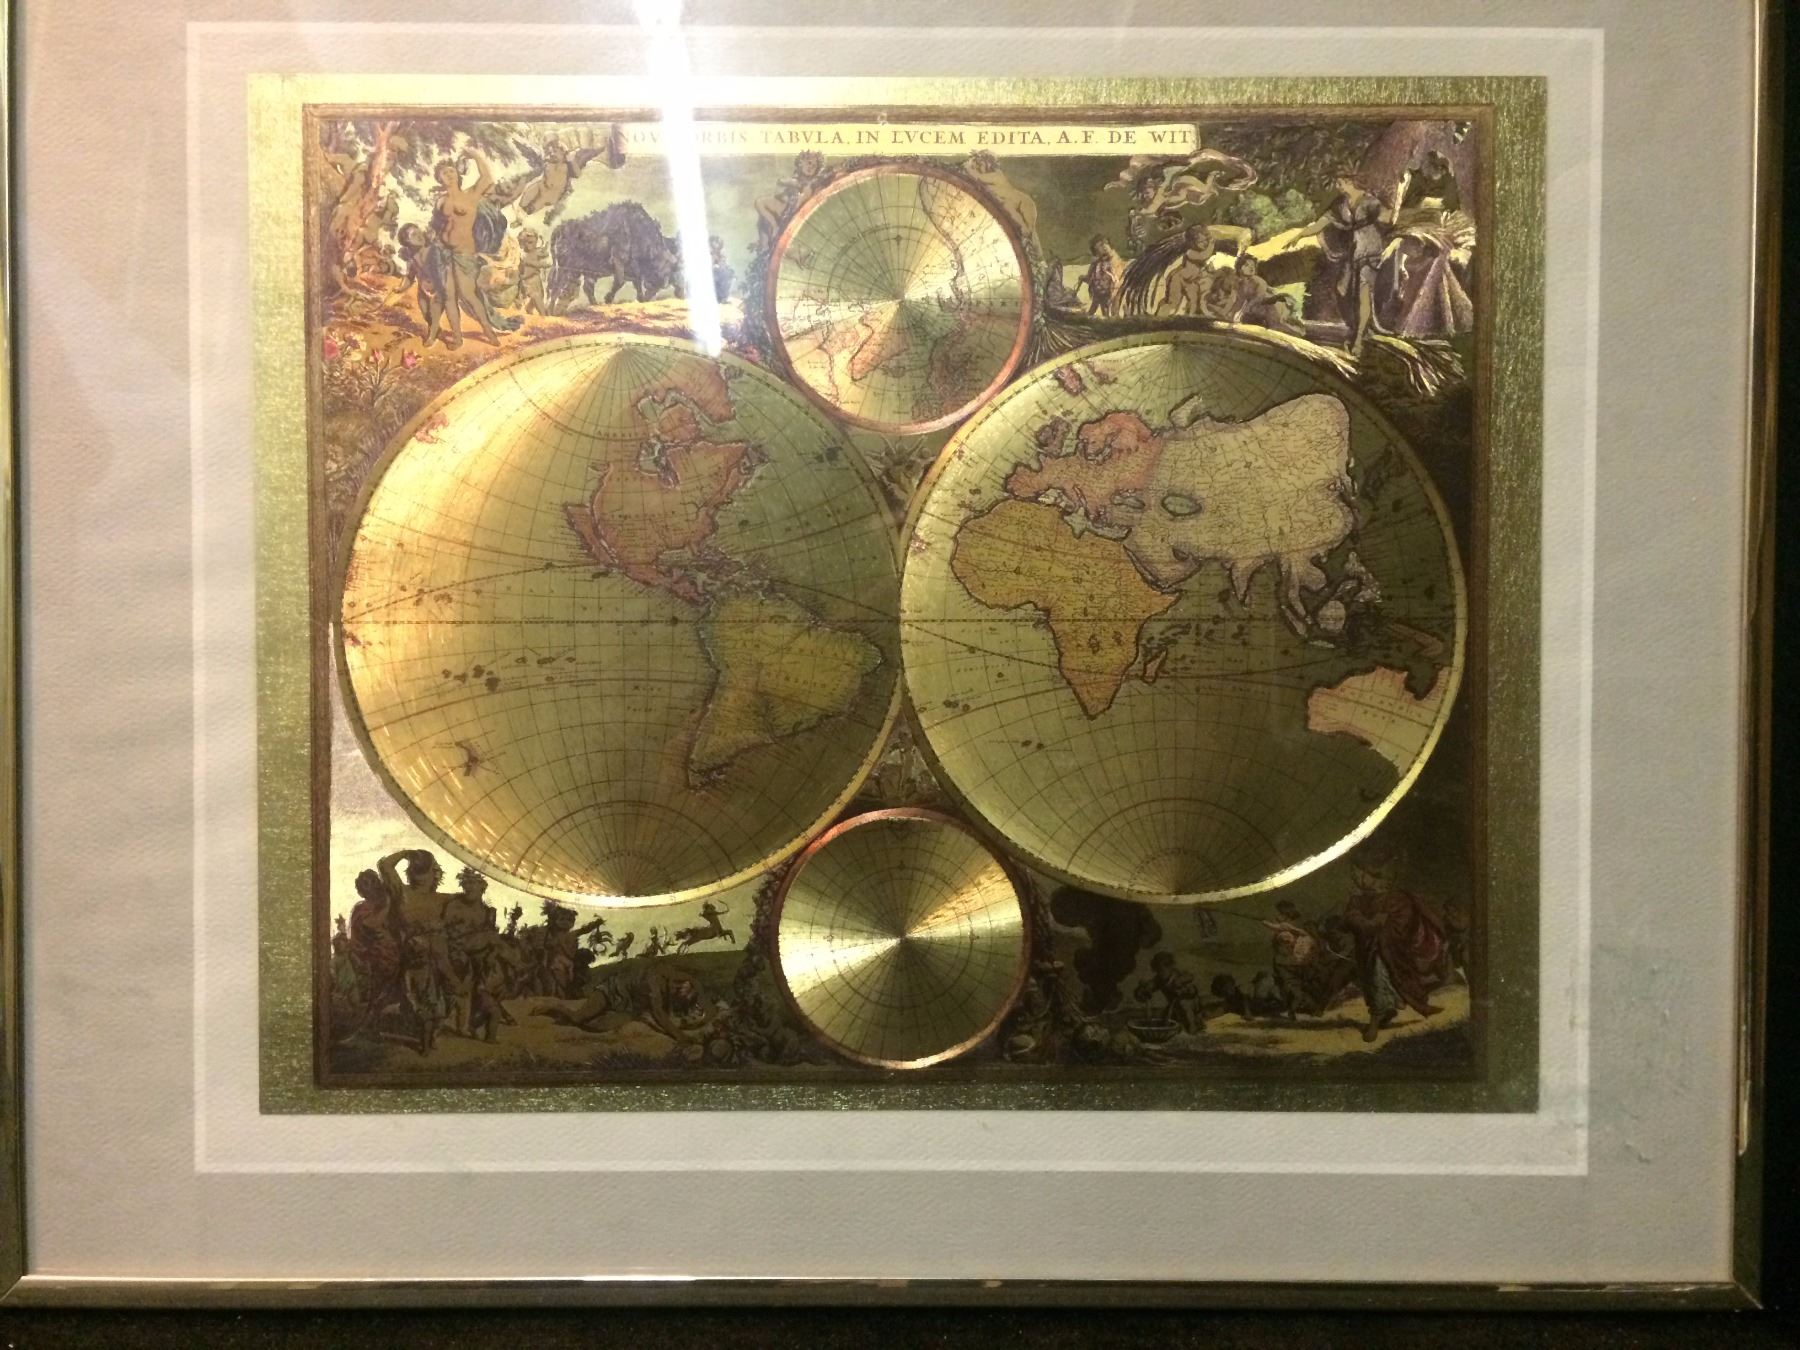 Framed 24 karat gold foil map image 1 framed 24 karat gold foil map gumiabroncs Choice Image